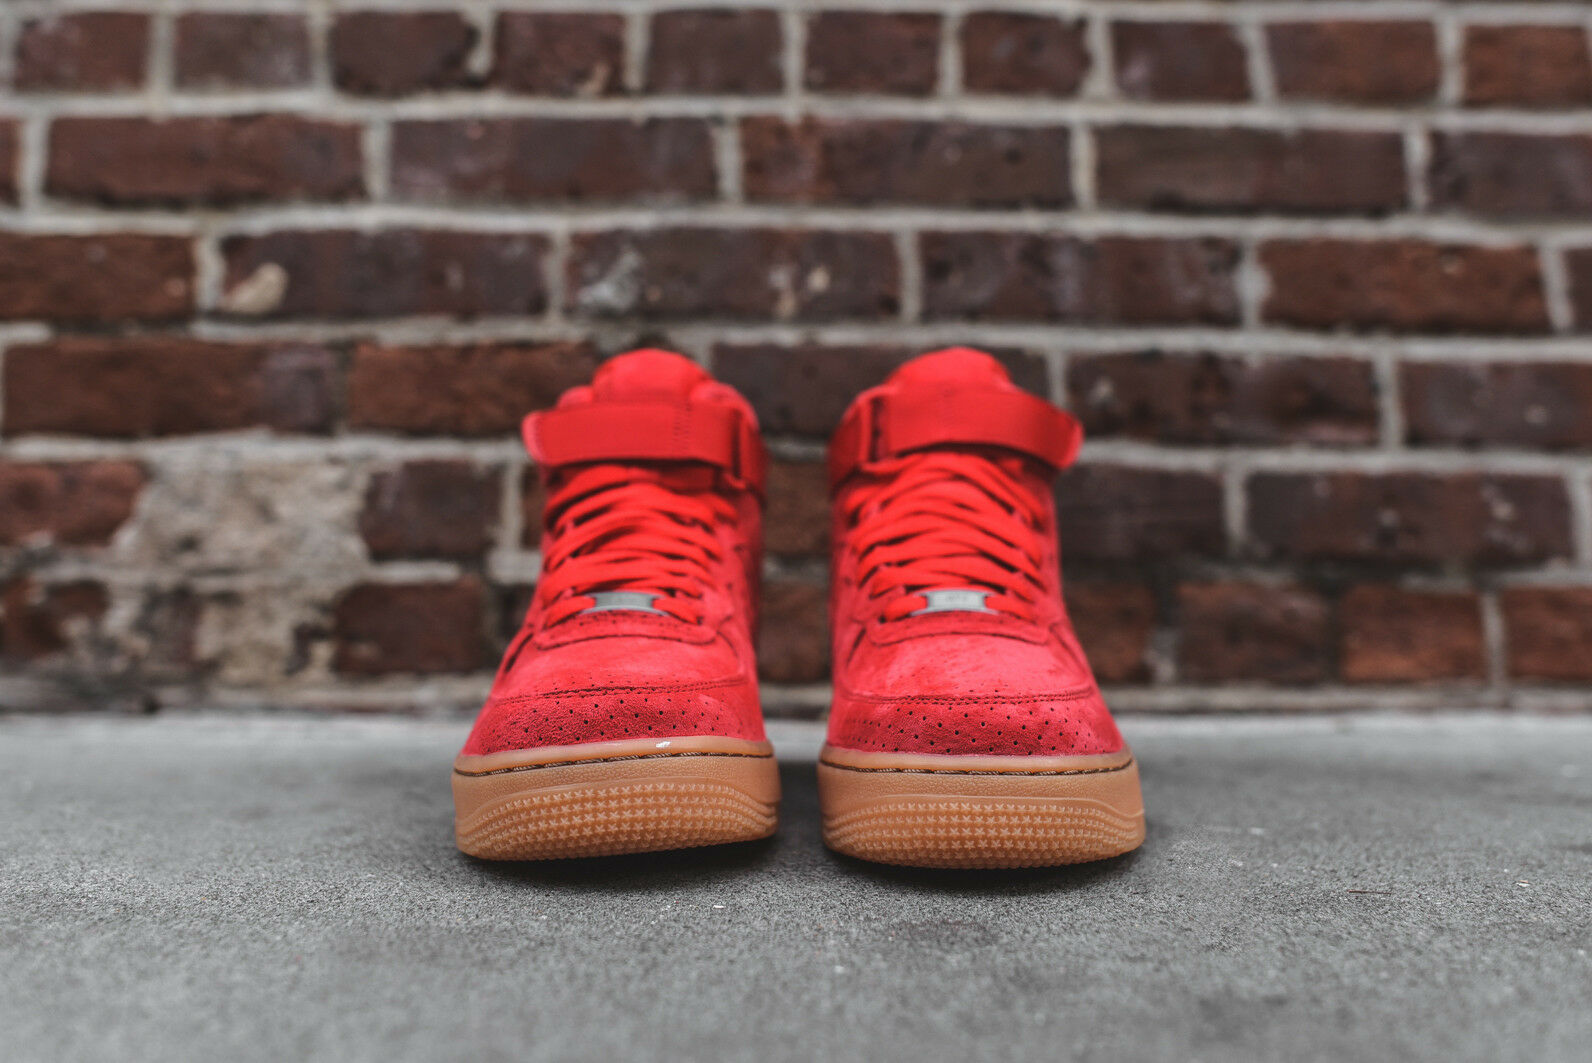 4bd9079fdc8ee9 Womens Nike Air Force 1 Hi Suede Basketball Shoes Size 7 Red Gum 749266 601  for sale online